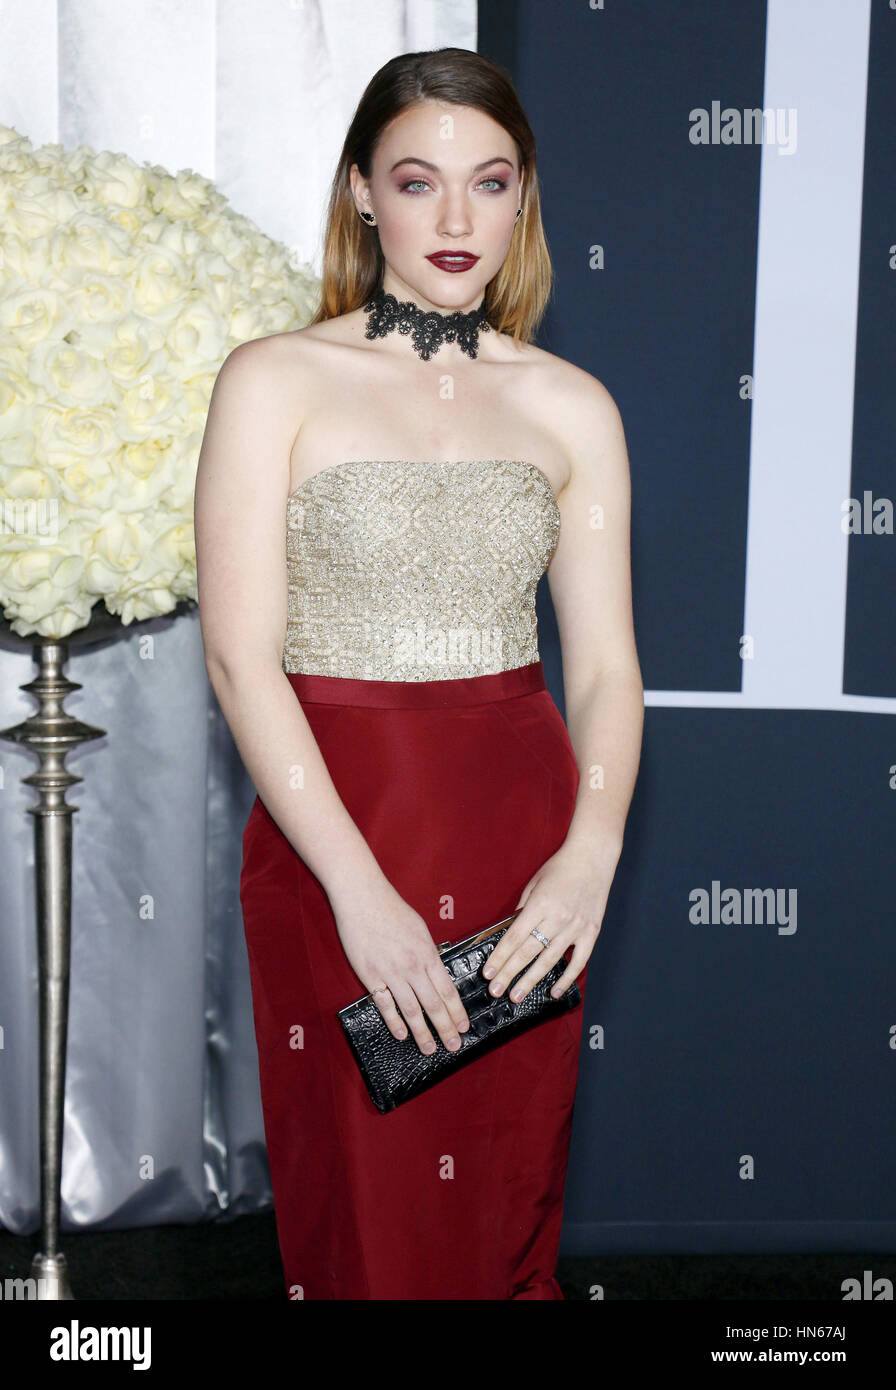 Violett Beane at the Los Angeles premiere of 'Fifty Shades Darker' held at the Theatre at Ace Hotel in Los - Stock Image